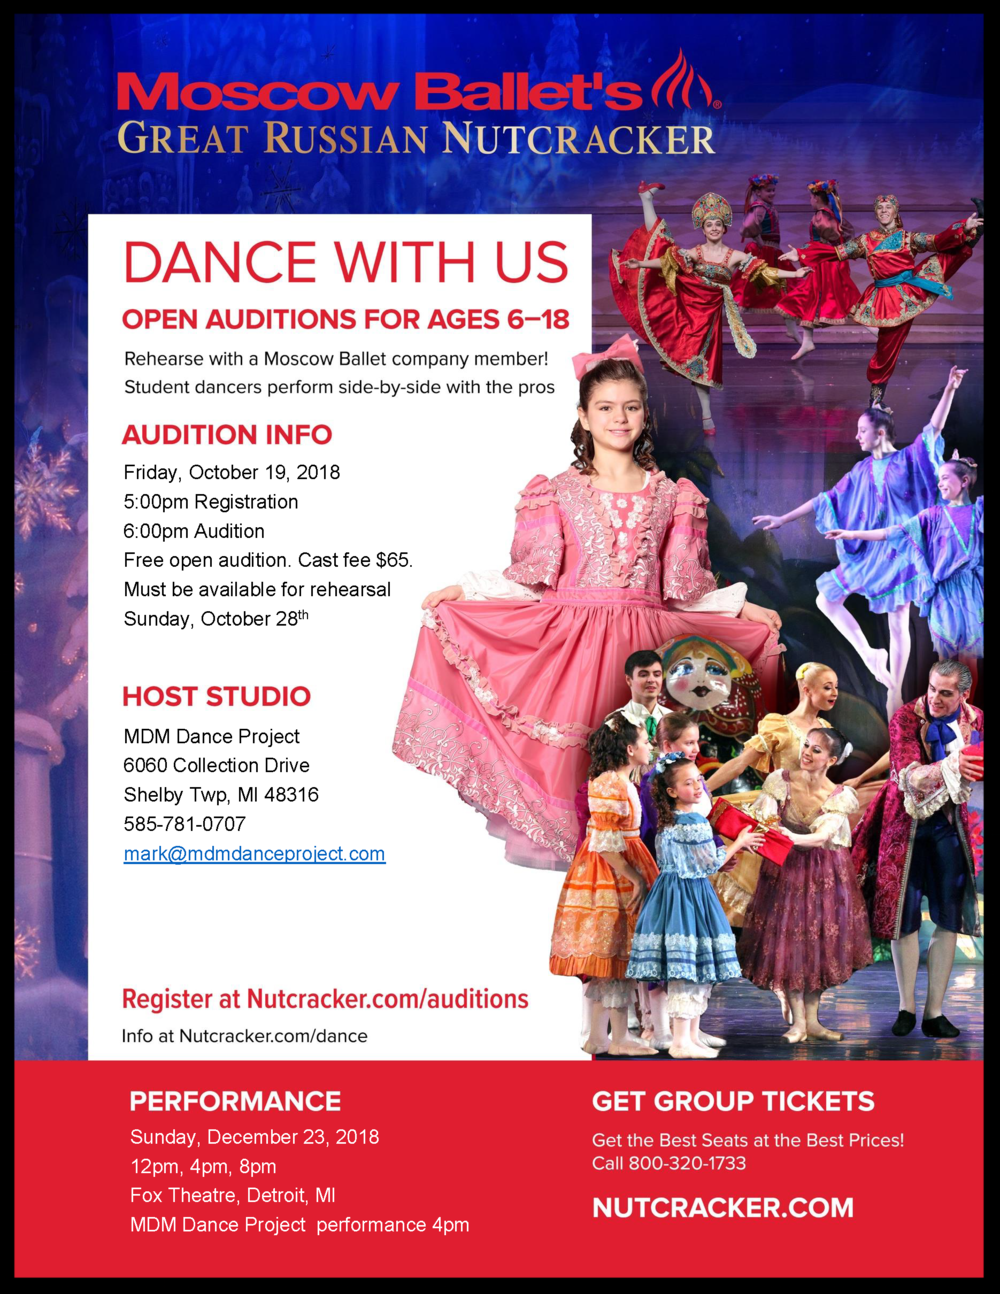 It's Nutcracker audition time again! Click the flyer for audition information, a video from the Moscow Ballet and details on what dancers can expect!